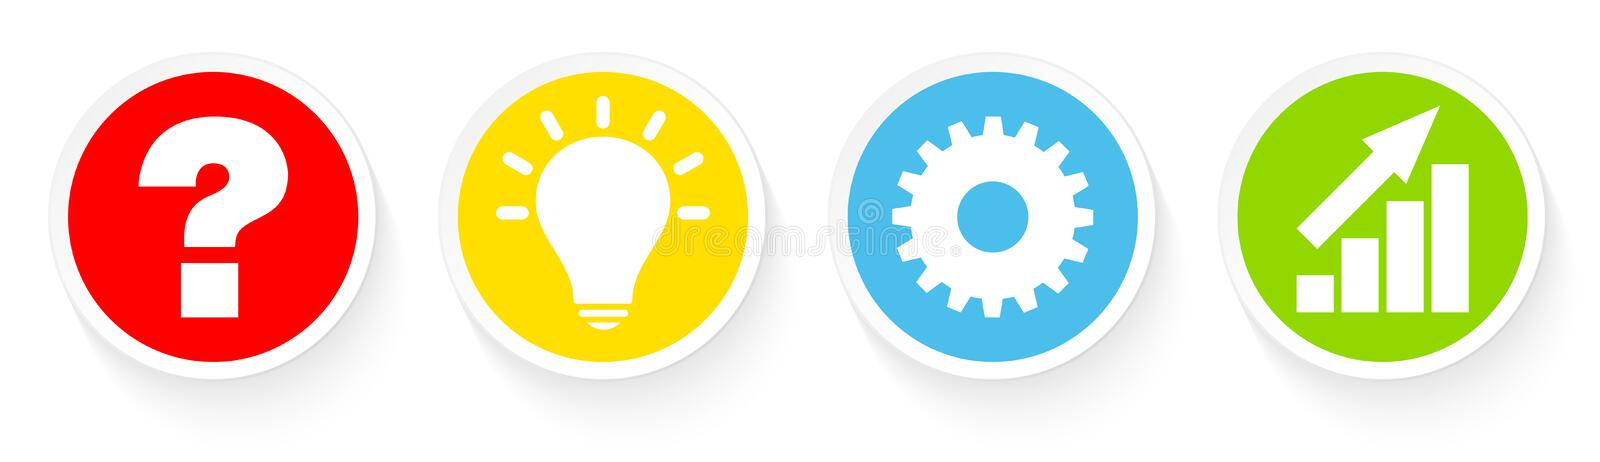 Buttons Question Idea Work And Success Color stock illustration